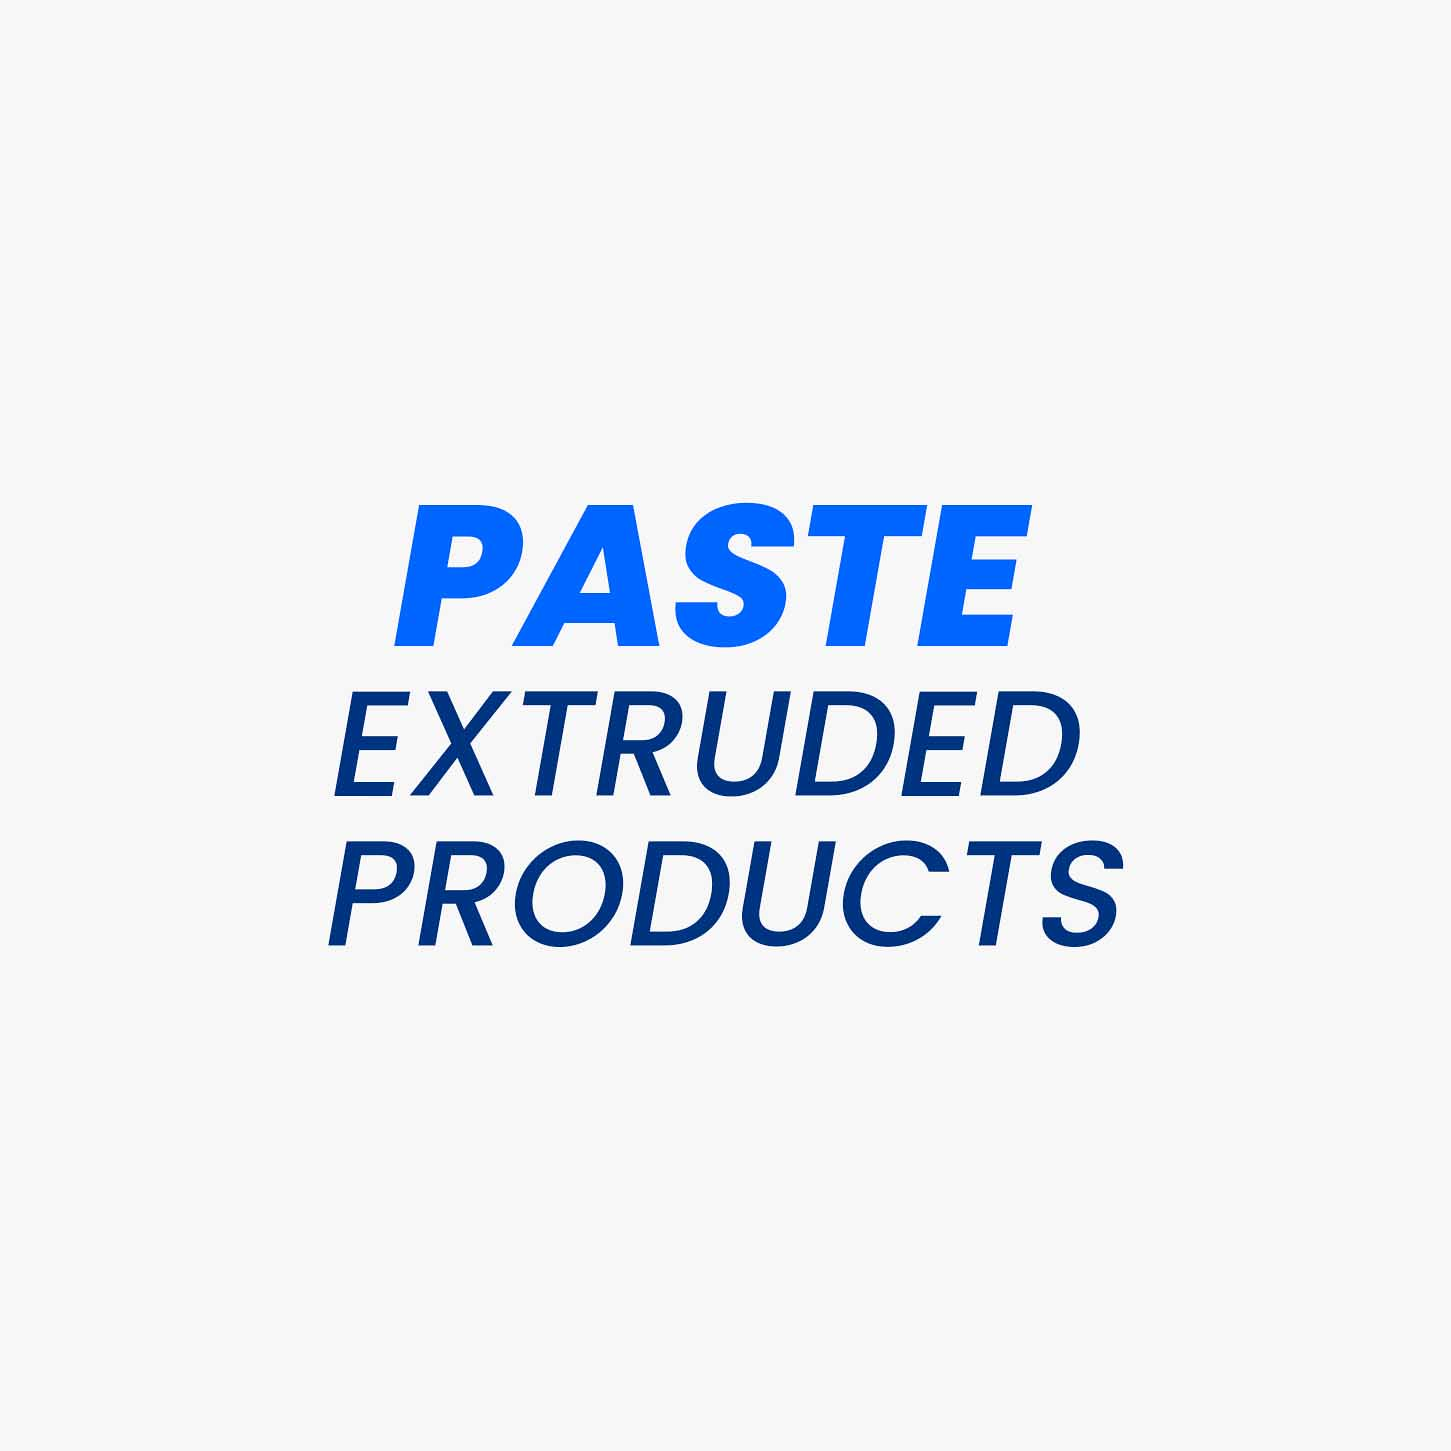 Products manufactured by Paste extrusion technology enables Vimal Polymers to broaden the PTFE product line with additional designs and profiles. In this manufacturing method, very close process control of the PTFE grain size range is maintained. For the paste extrusion process, the extrudable PTFE fine powders are blended with a volatile lubricant (hydrocarbon) for preparing the paste, which is then pre-pressed and filled in a PTFE paste extruder. The preform paste is compressed in a cold or in the preheated stage through a die. The part obtained is separated from the lubricant, followed by the sintering process.